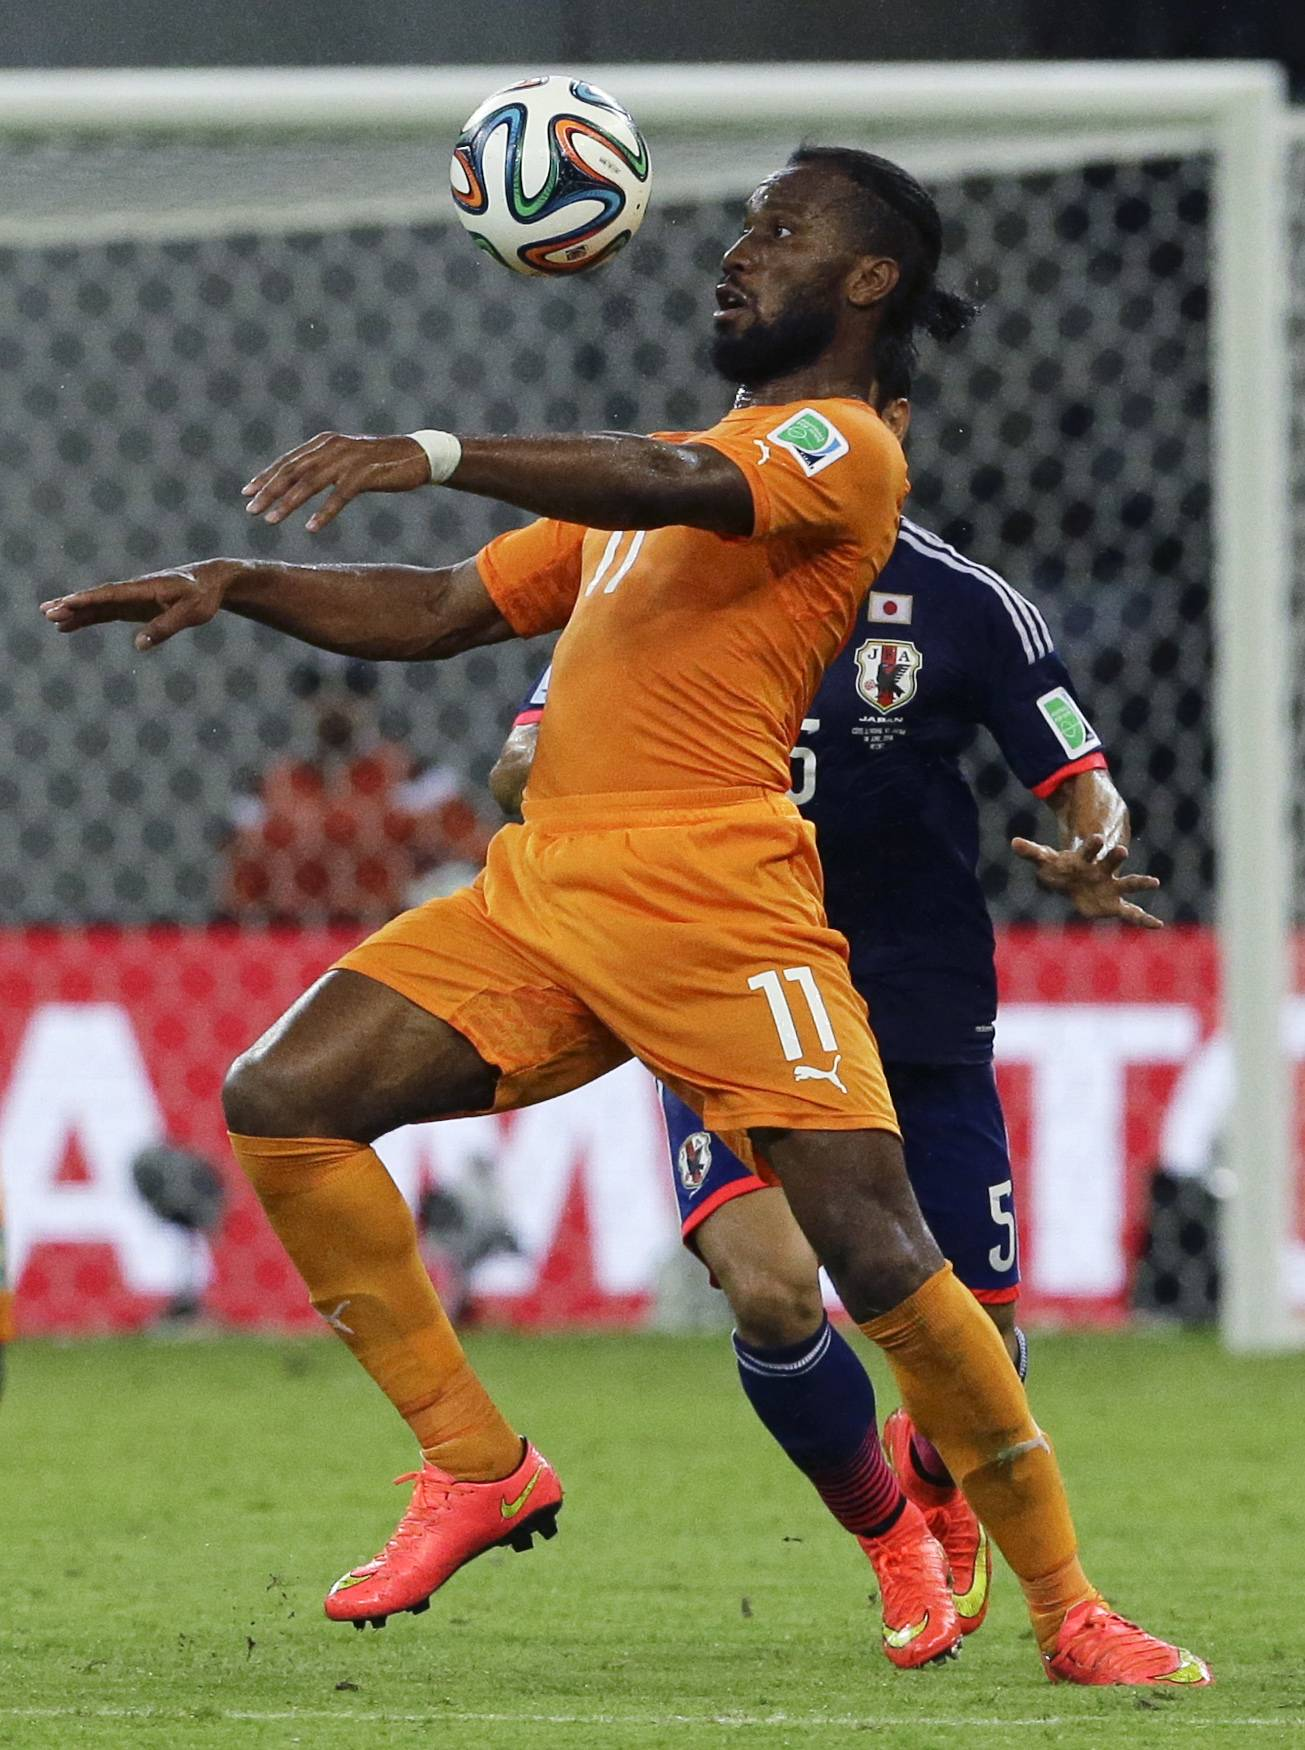 Ivory Coast's Didier Drogba eyes the ball during the group C World Cup soccer match between Ivory Coast and Japan Saturday at the Arena Pernambuco in Recife, Brazil. Ivory Coast won the match 2-1.